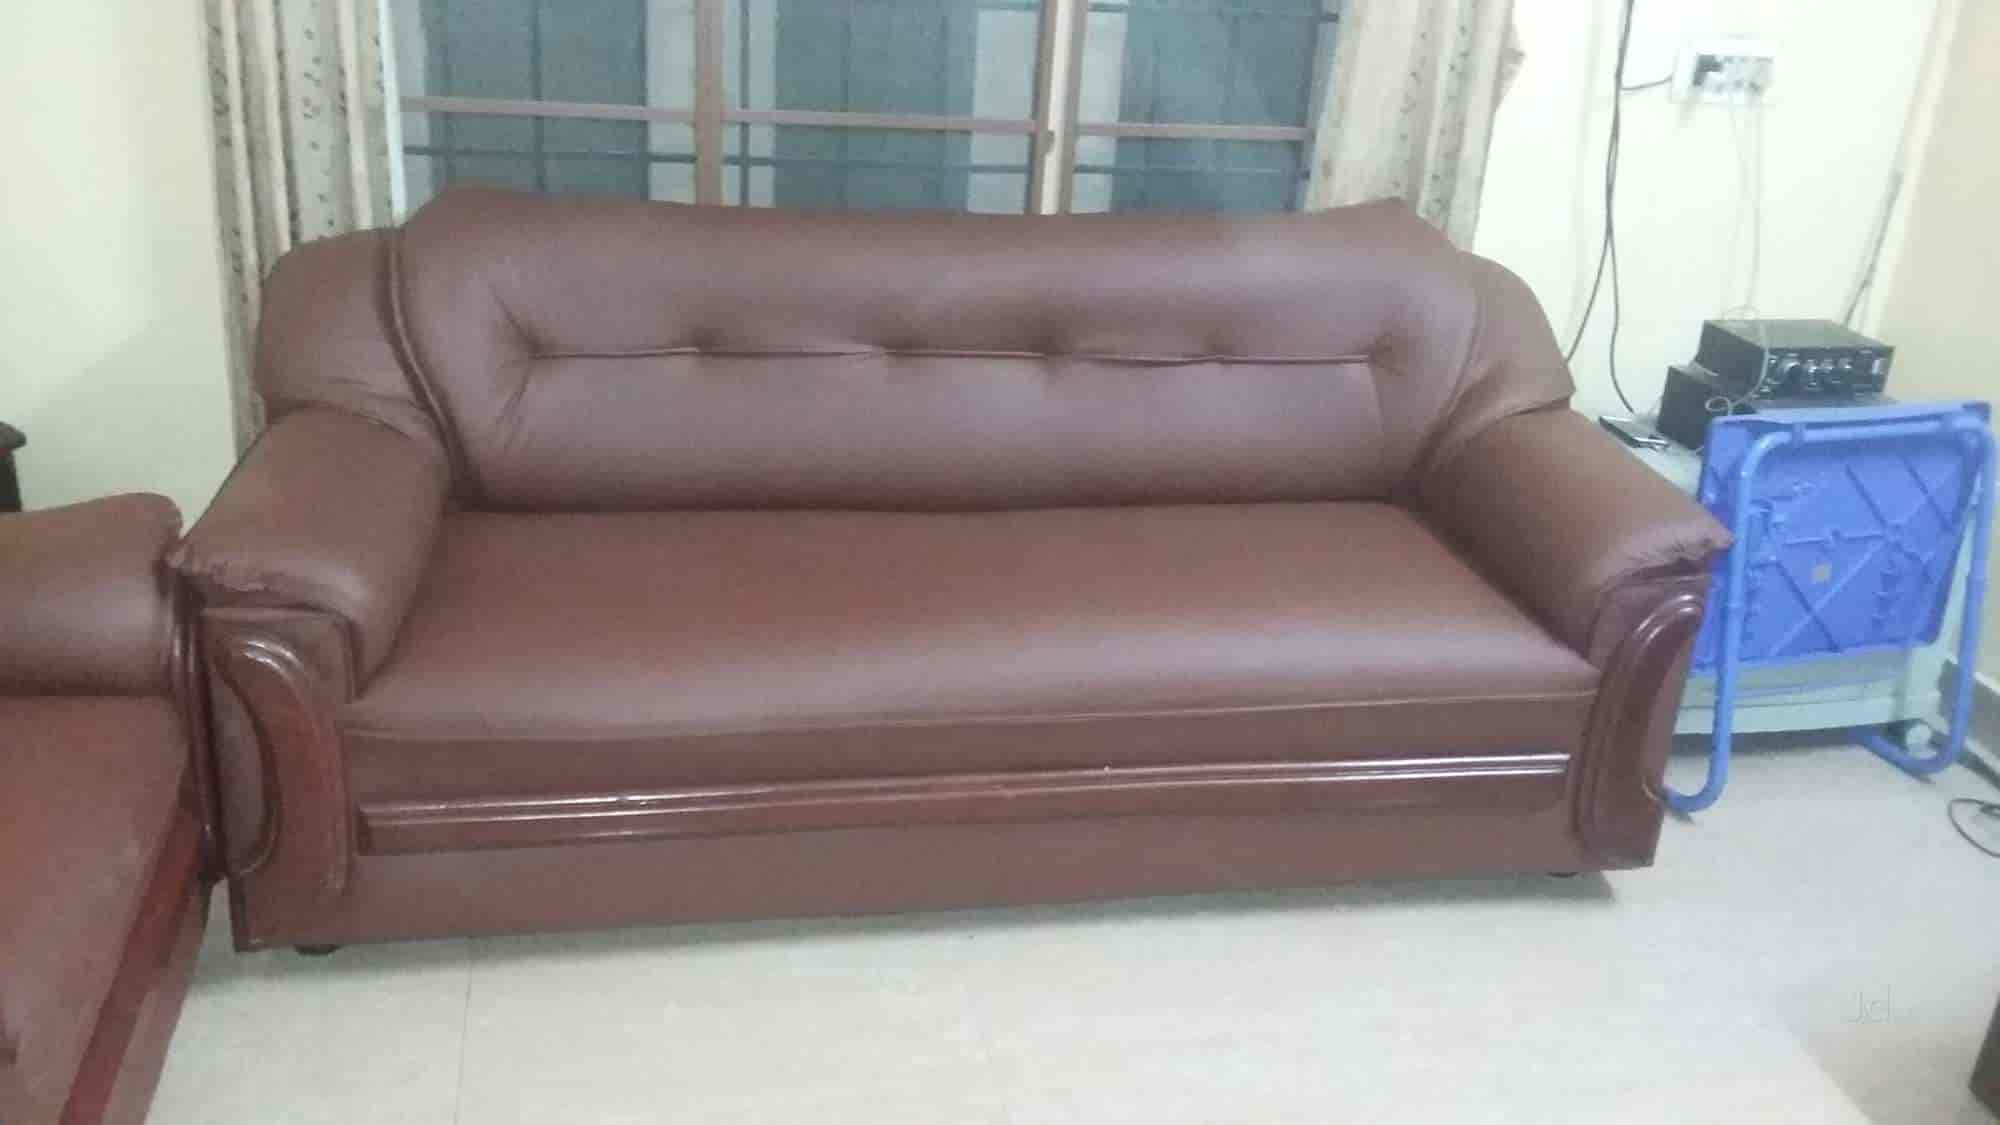 Recliner Sofa Repair Chennai Shiva Sofa Relining Works Vinayagapuram Sofa Repair Services